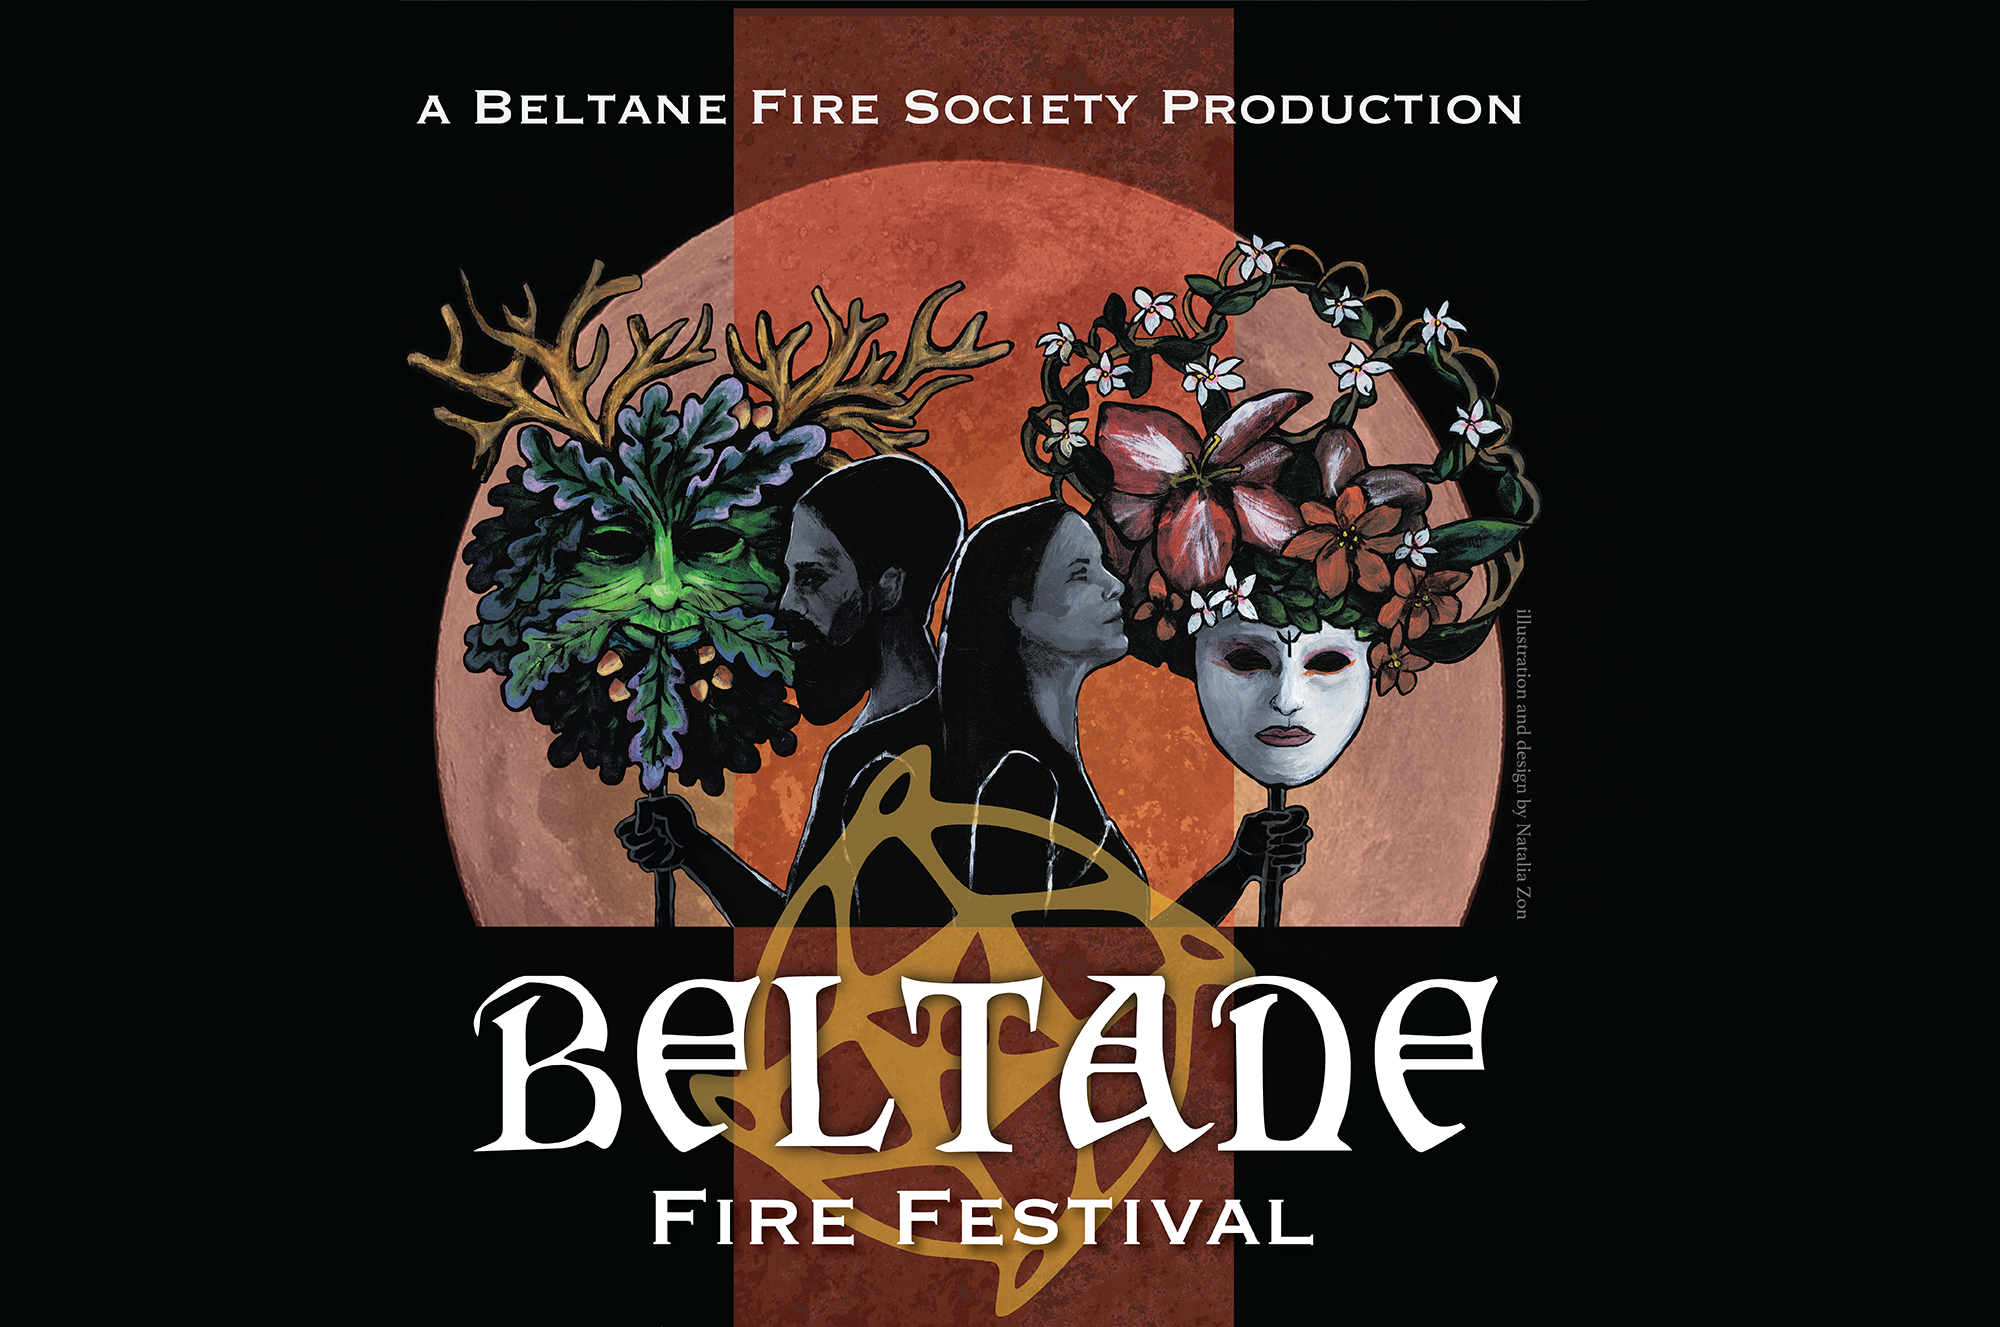 Design our poster for Beltane Fire Festival 2020